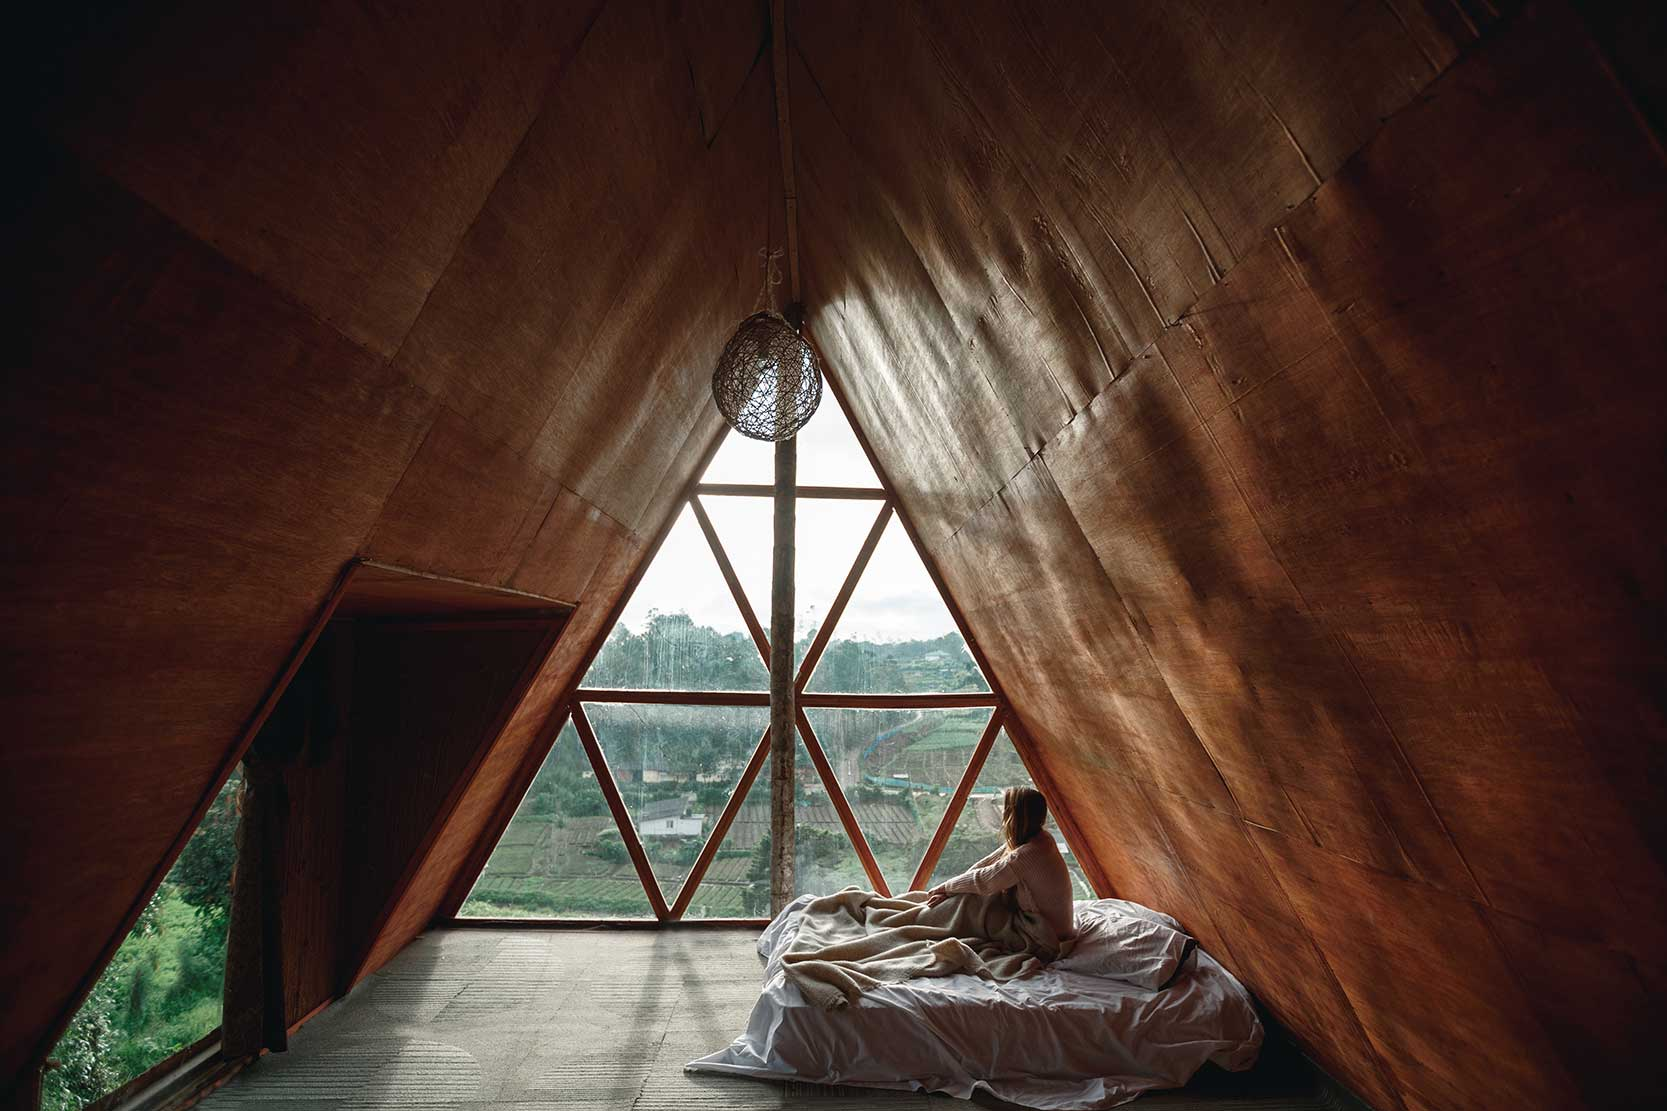 Waking up in the Wooden Cabin